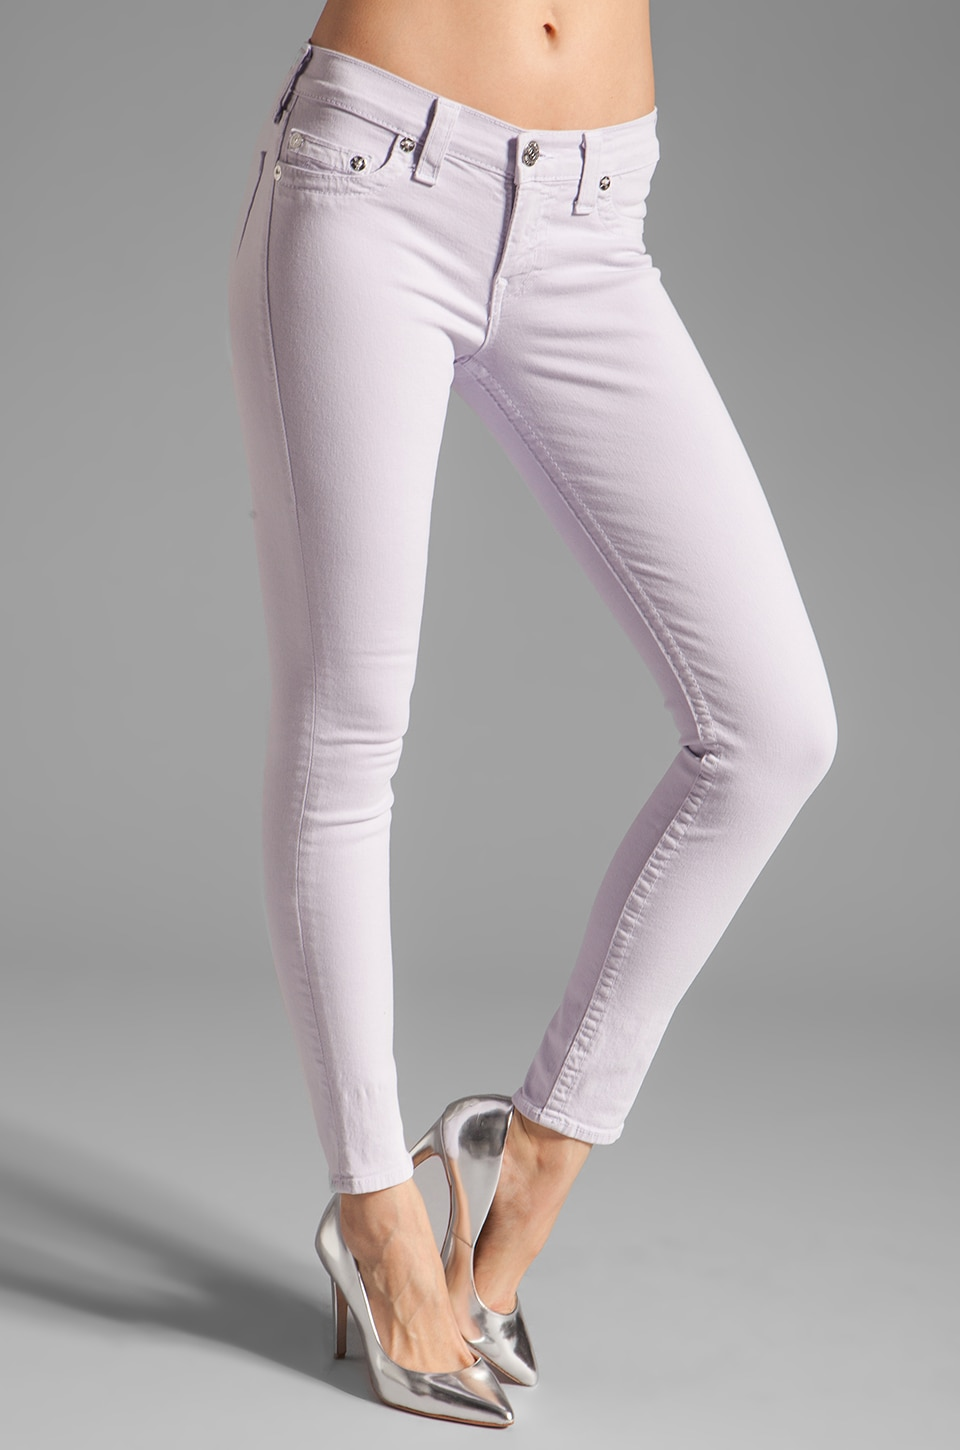 True Religion Halle Skinny Legging in Lilac